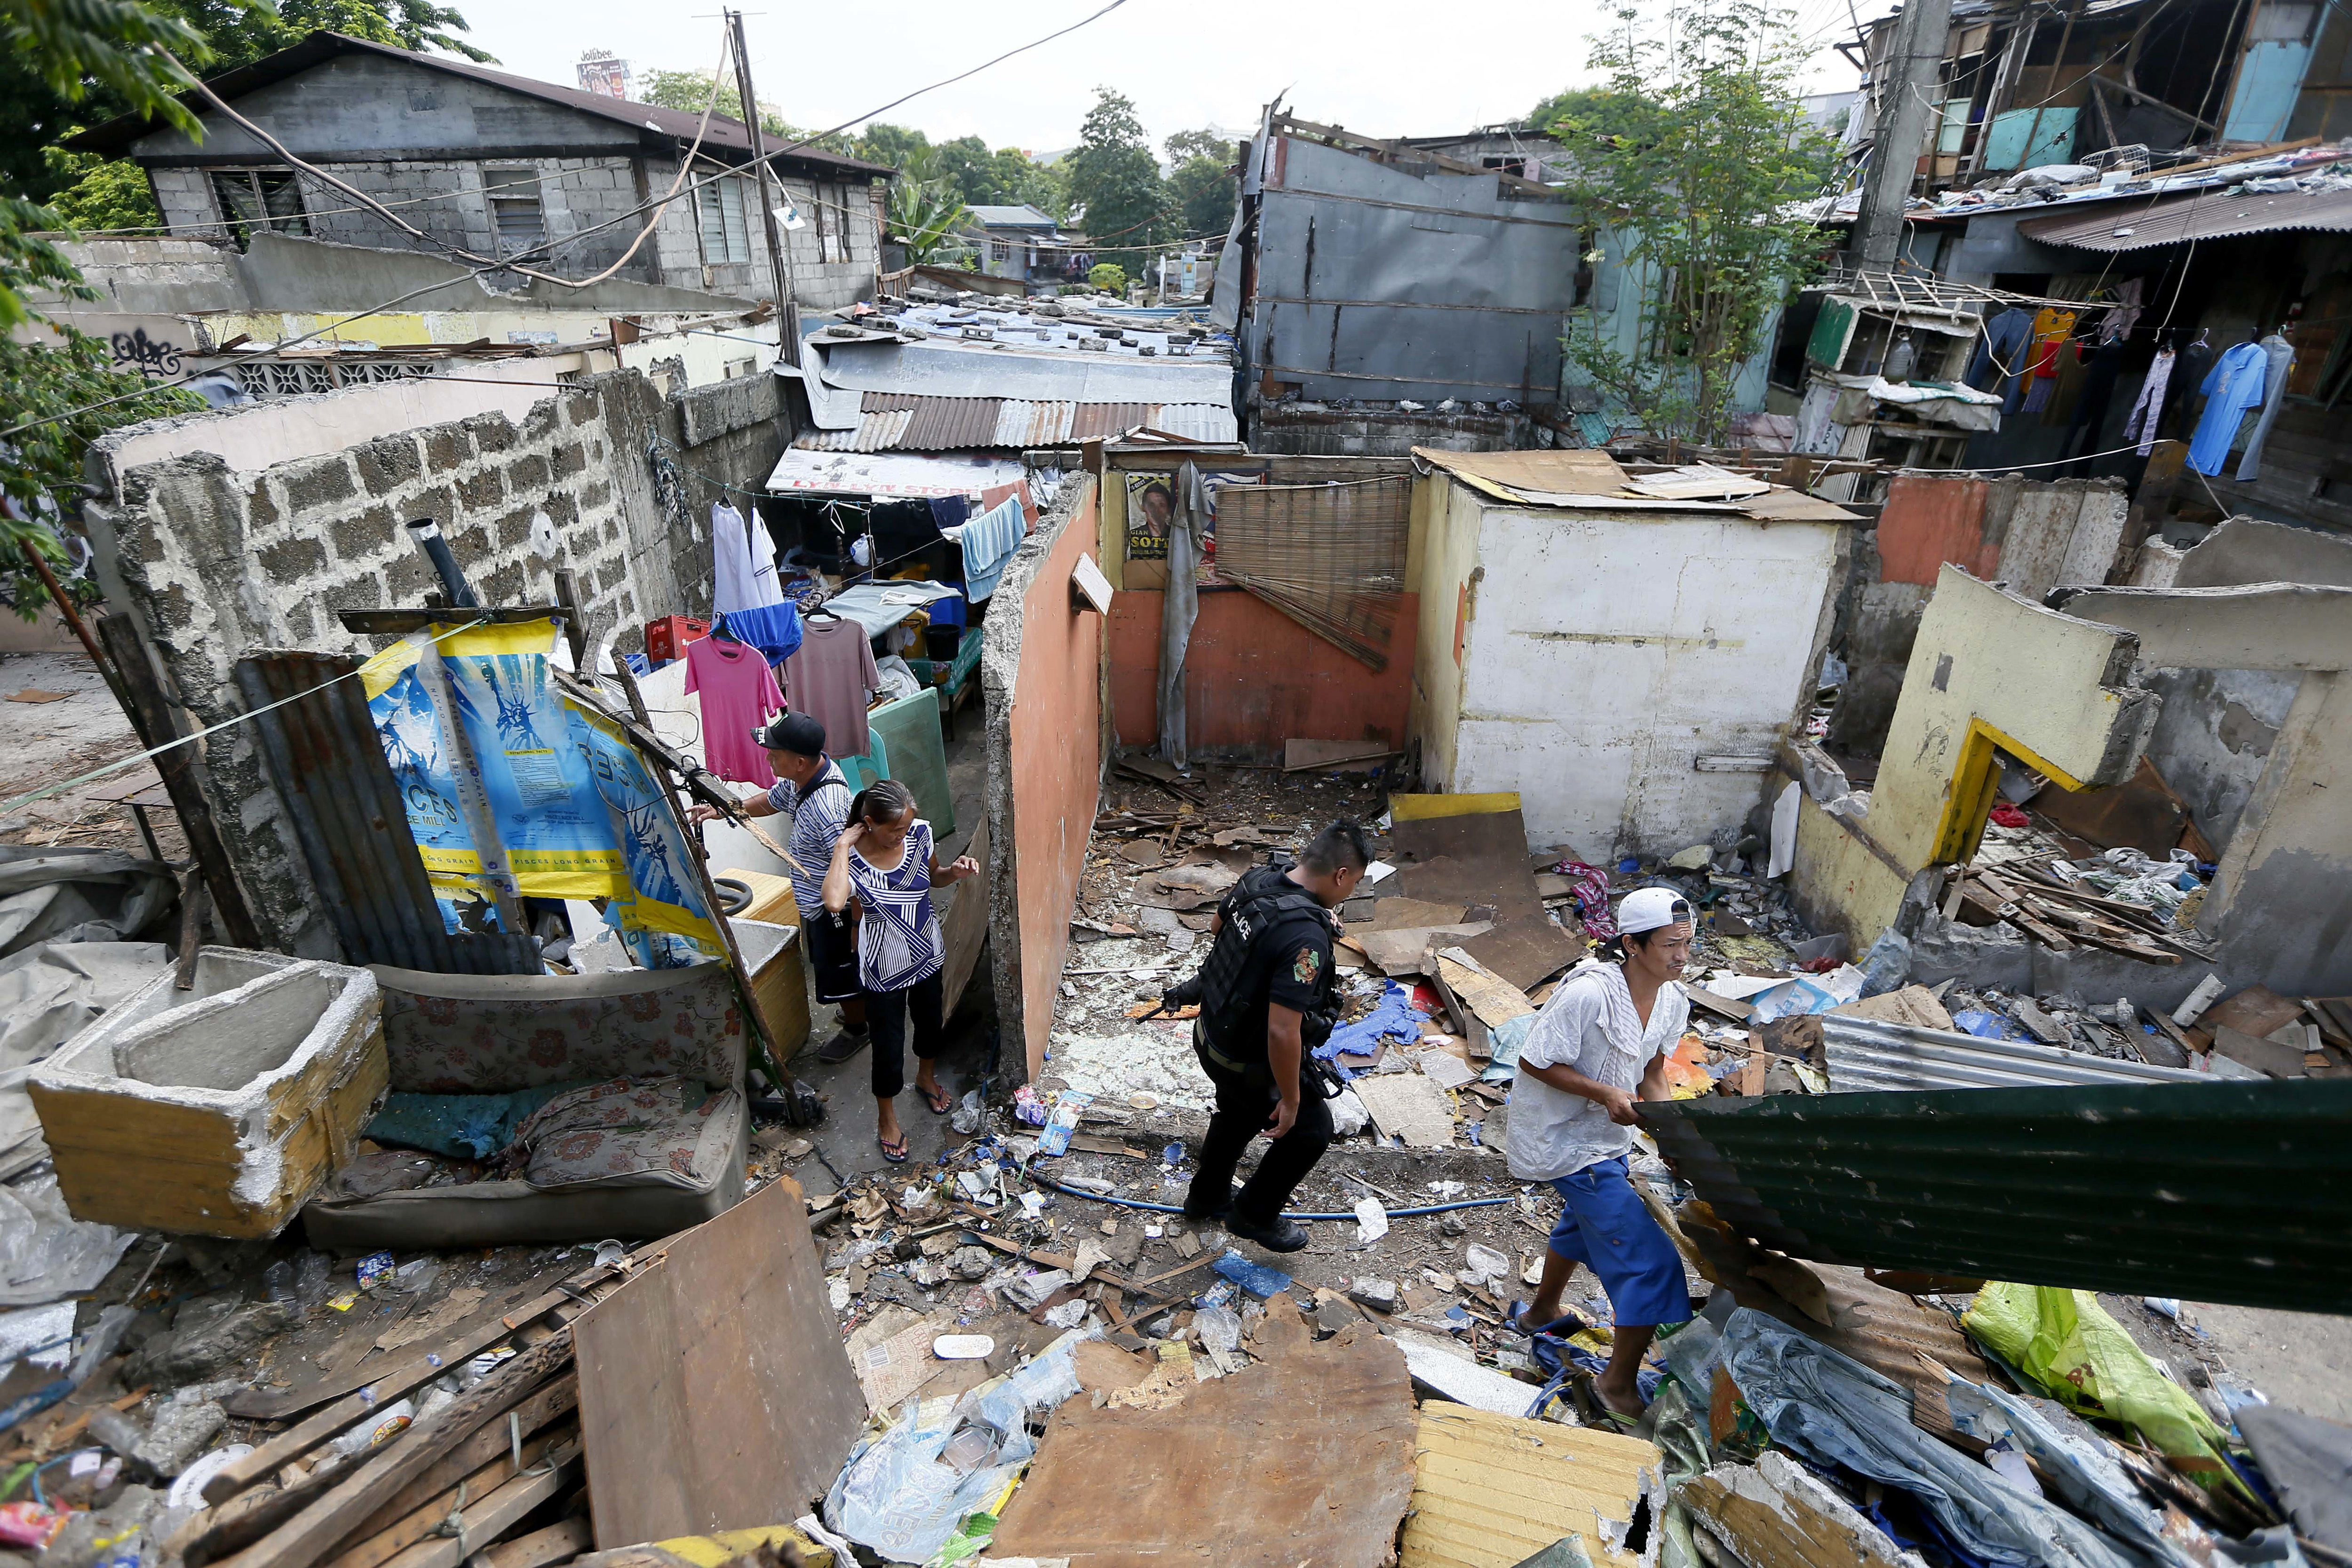 A member of the Philippine National Police SWAT team walks through debris as former inhabitants try to salvage any items following the demolition of their community Monday, June 6, 2016 in suburban Quezon city northeast of Manila, Philippines.